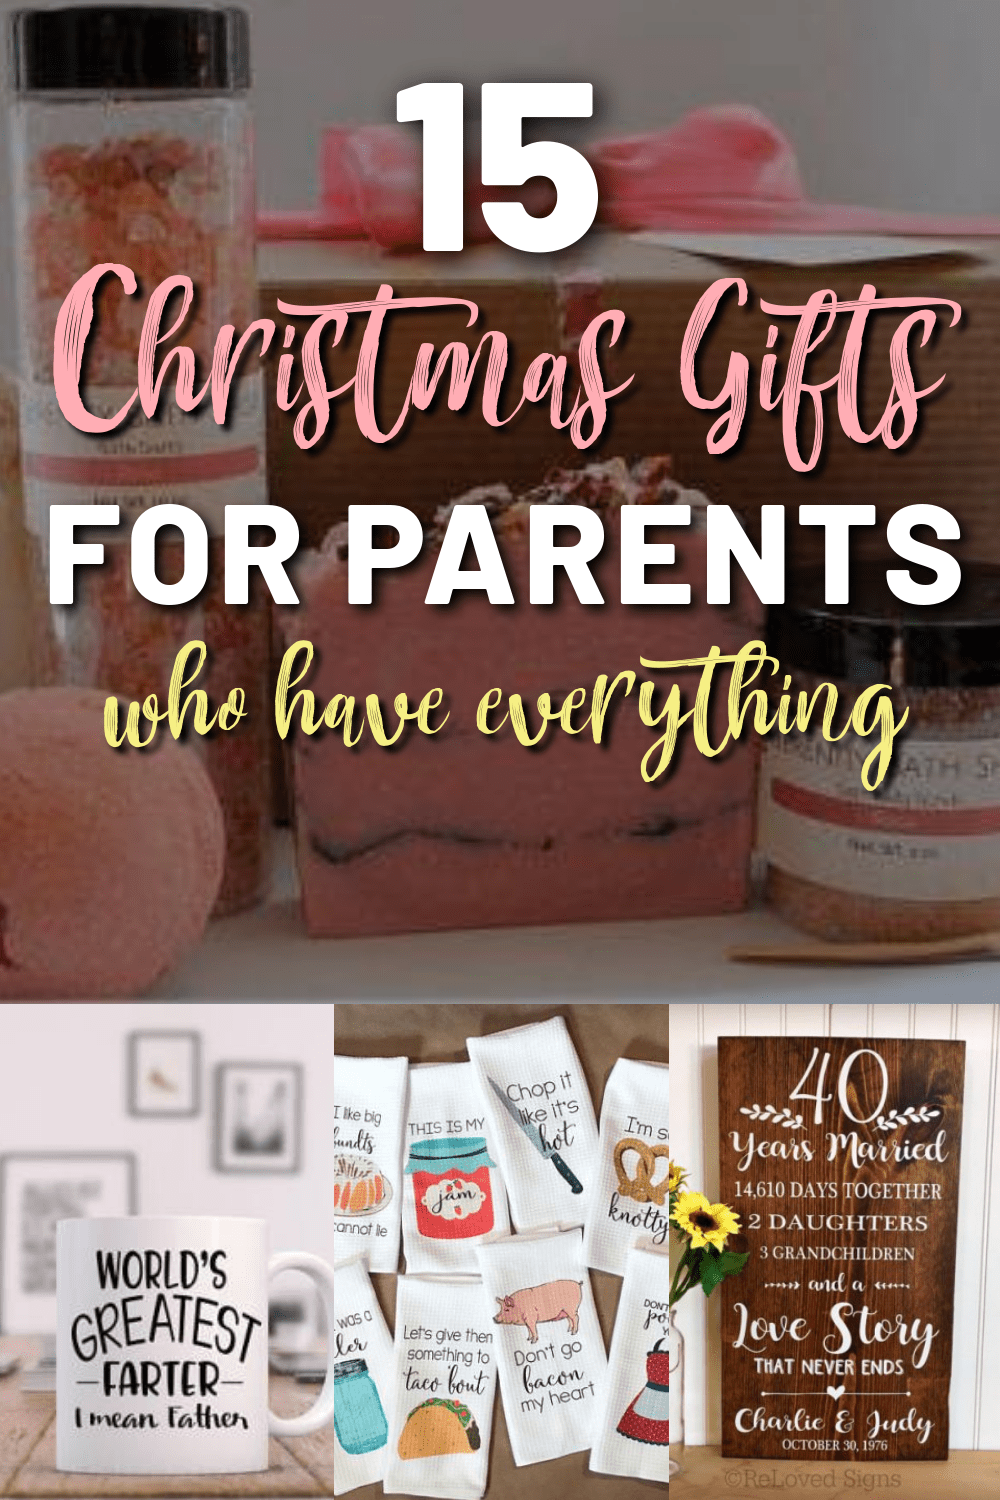 5 Parent Christmas Gift Ideas For Upper Elementary Classrooms Teacher Christmas Gifts Parents Christmas School Christmas Gifts